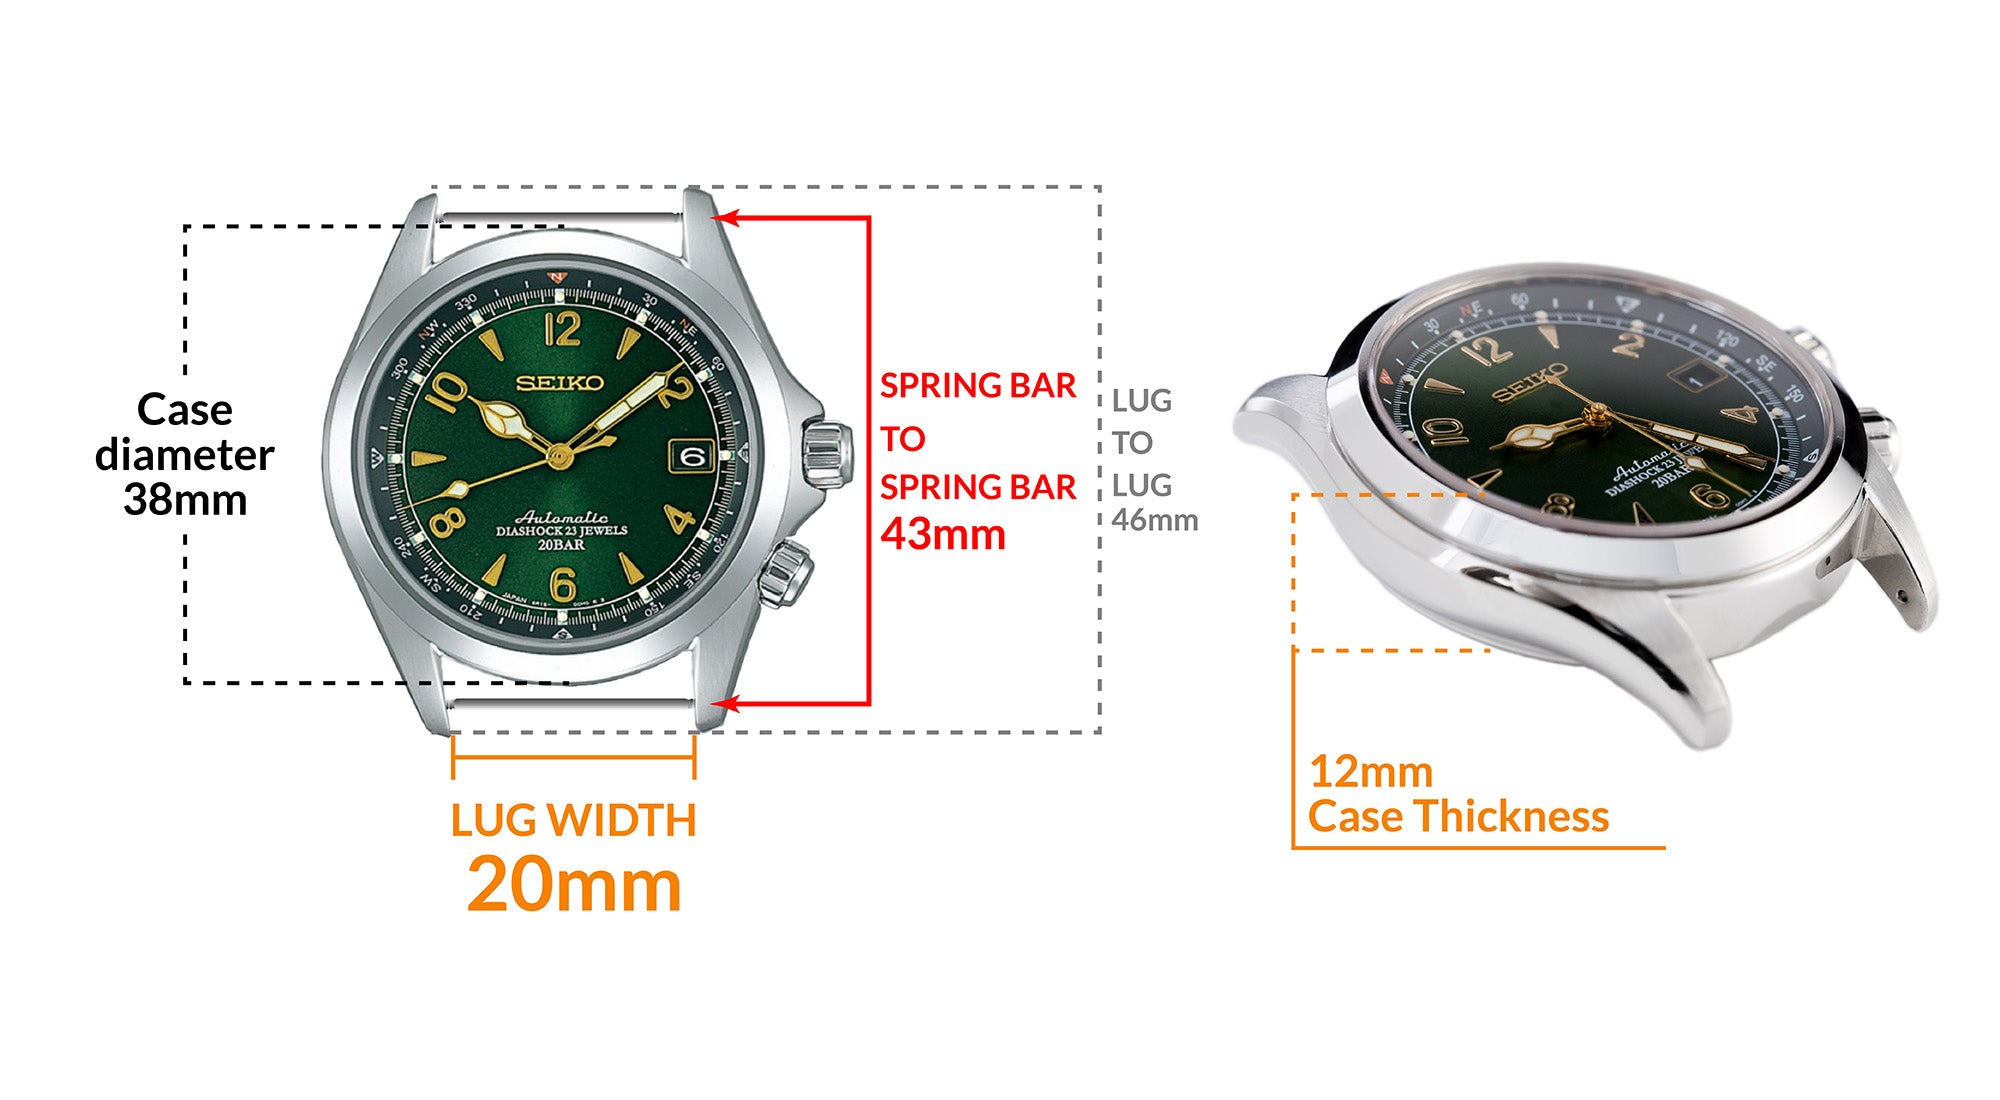 Seiko Alpinist SARB017- Details Seiko watch size, Lug width and case dimensions